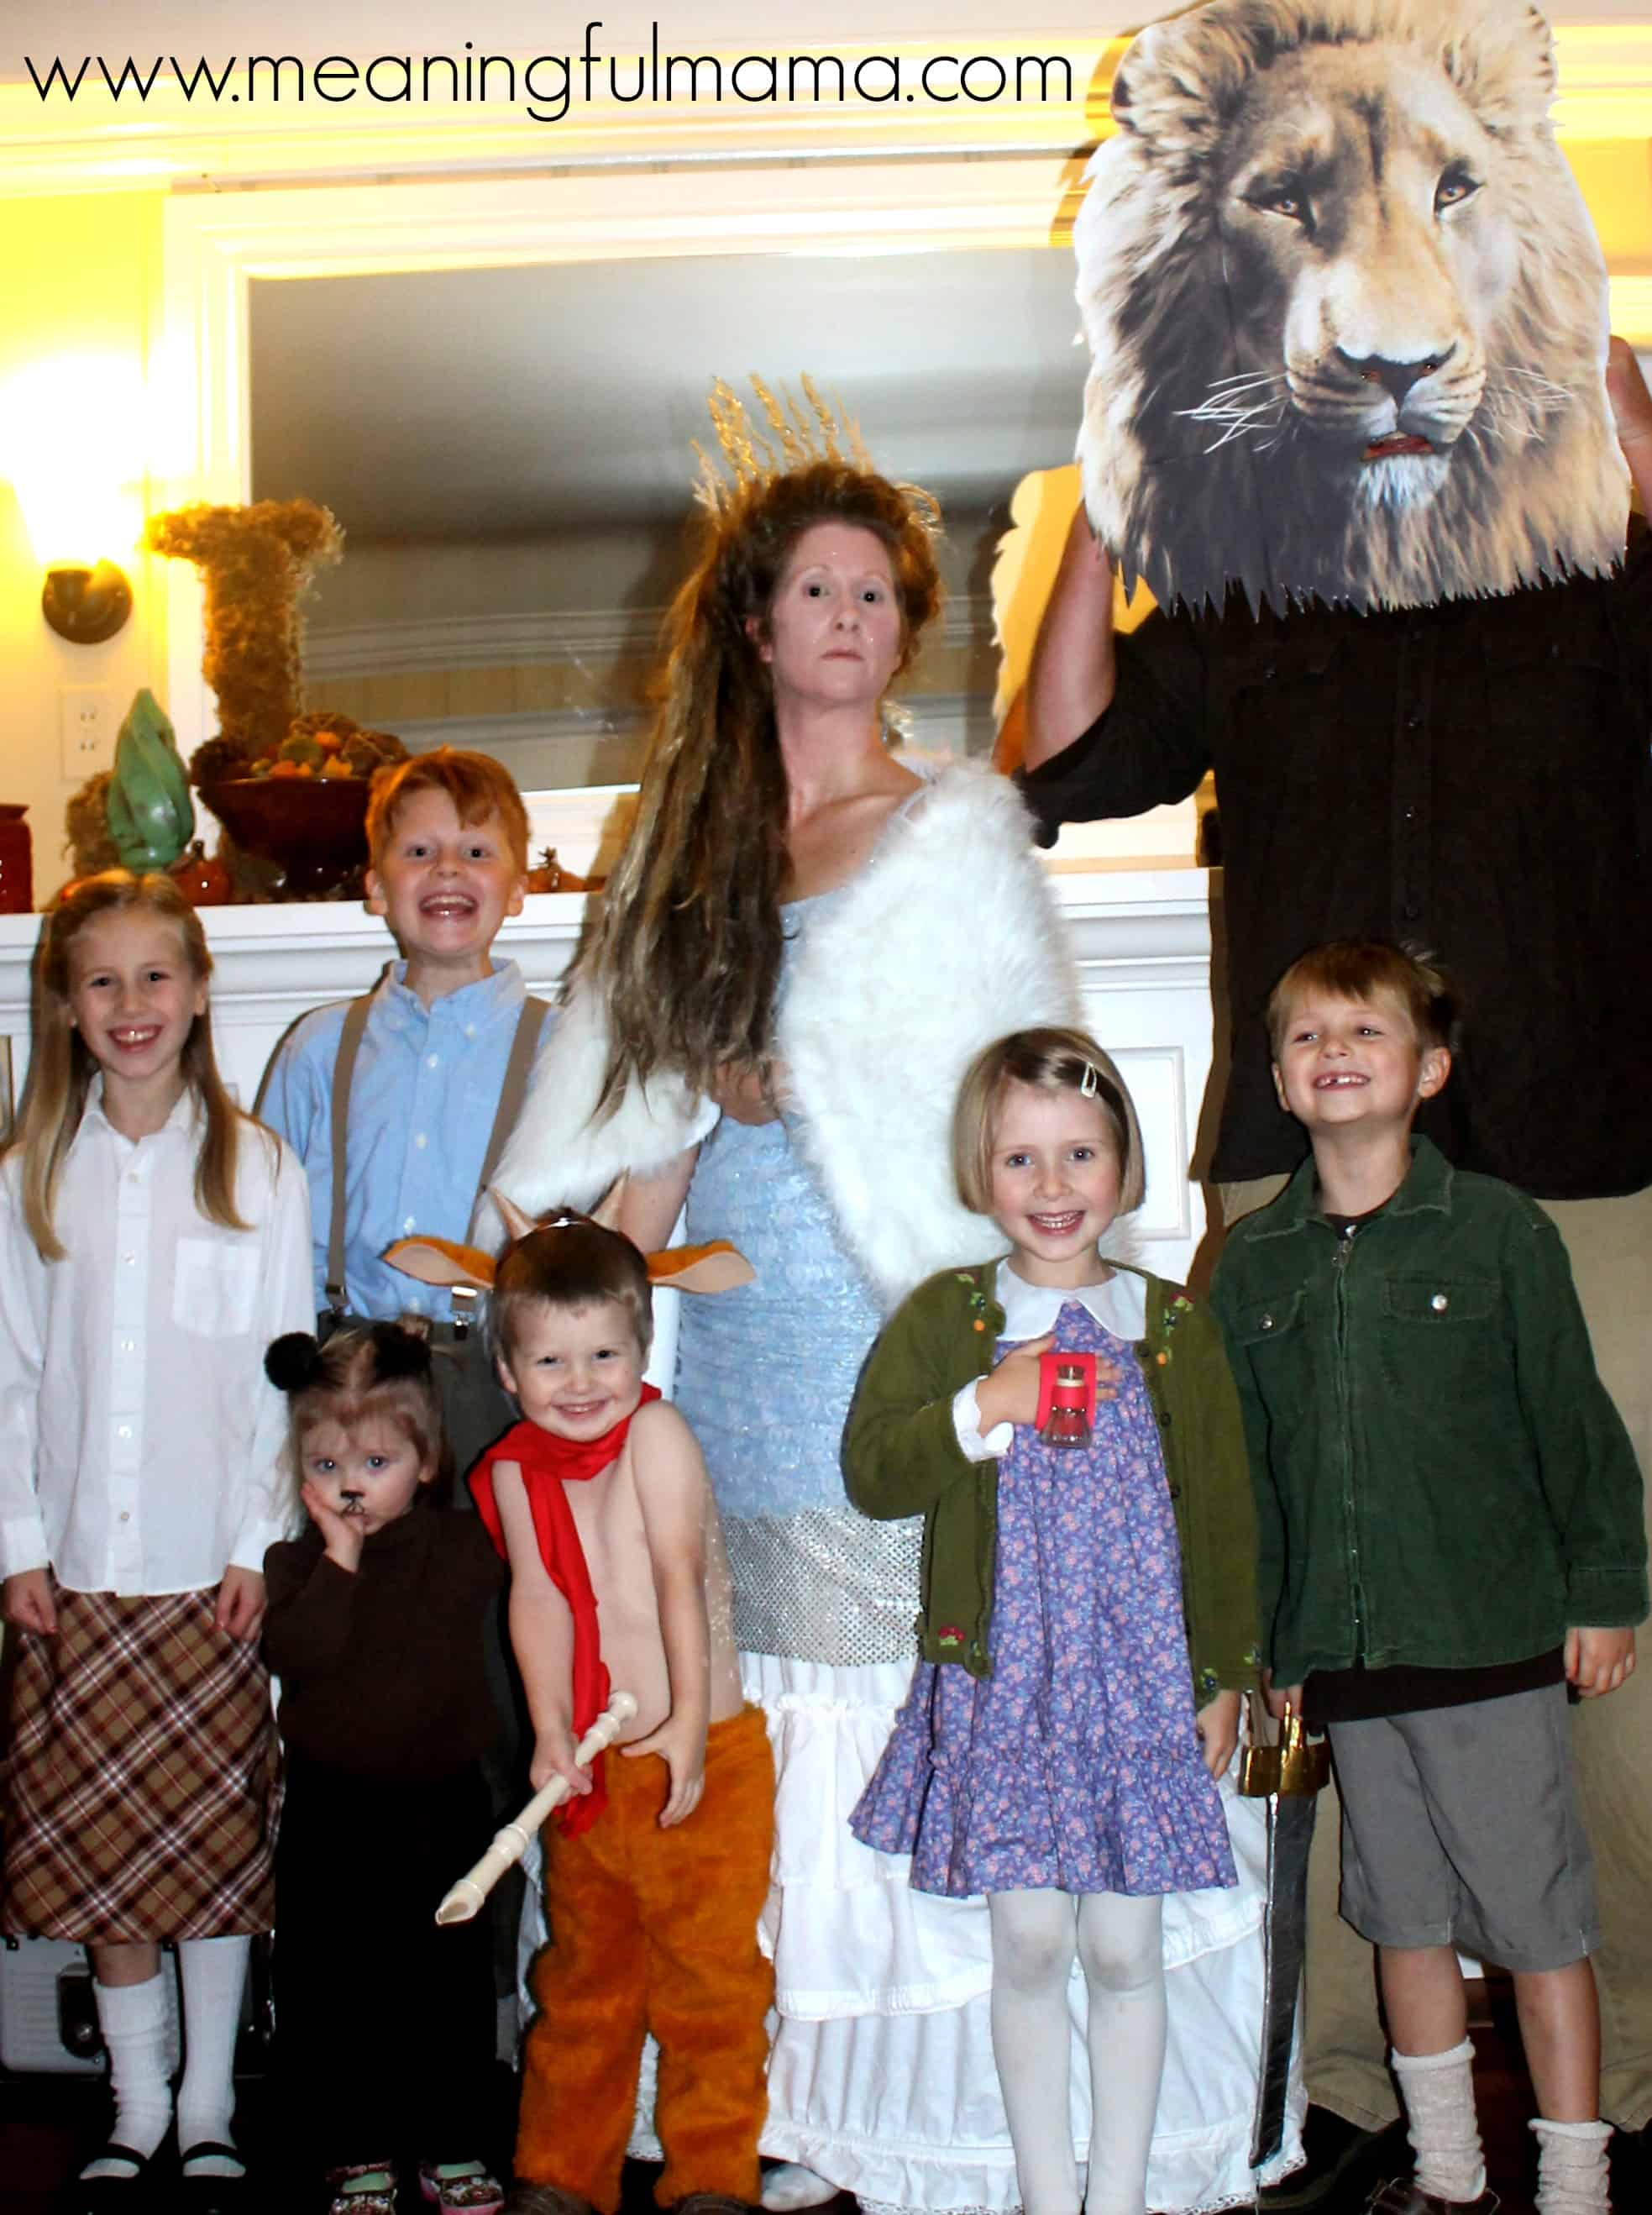 sc 1 st  Meaningful Mama & 15 Creative Family Costume Ideas